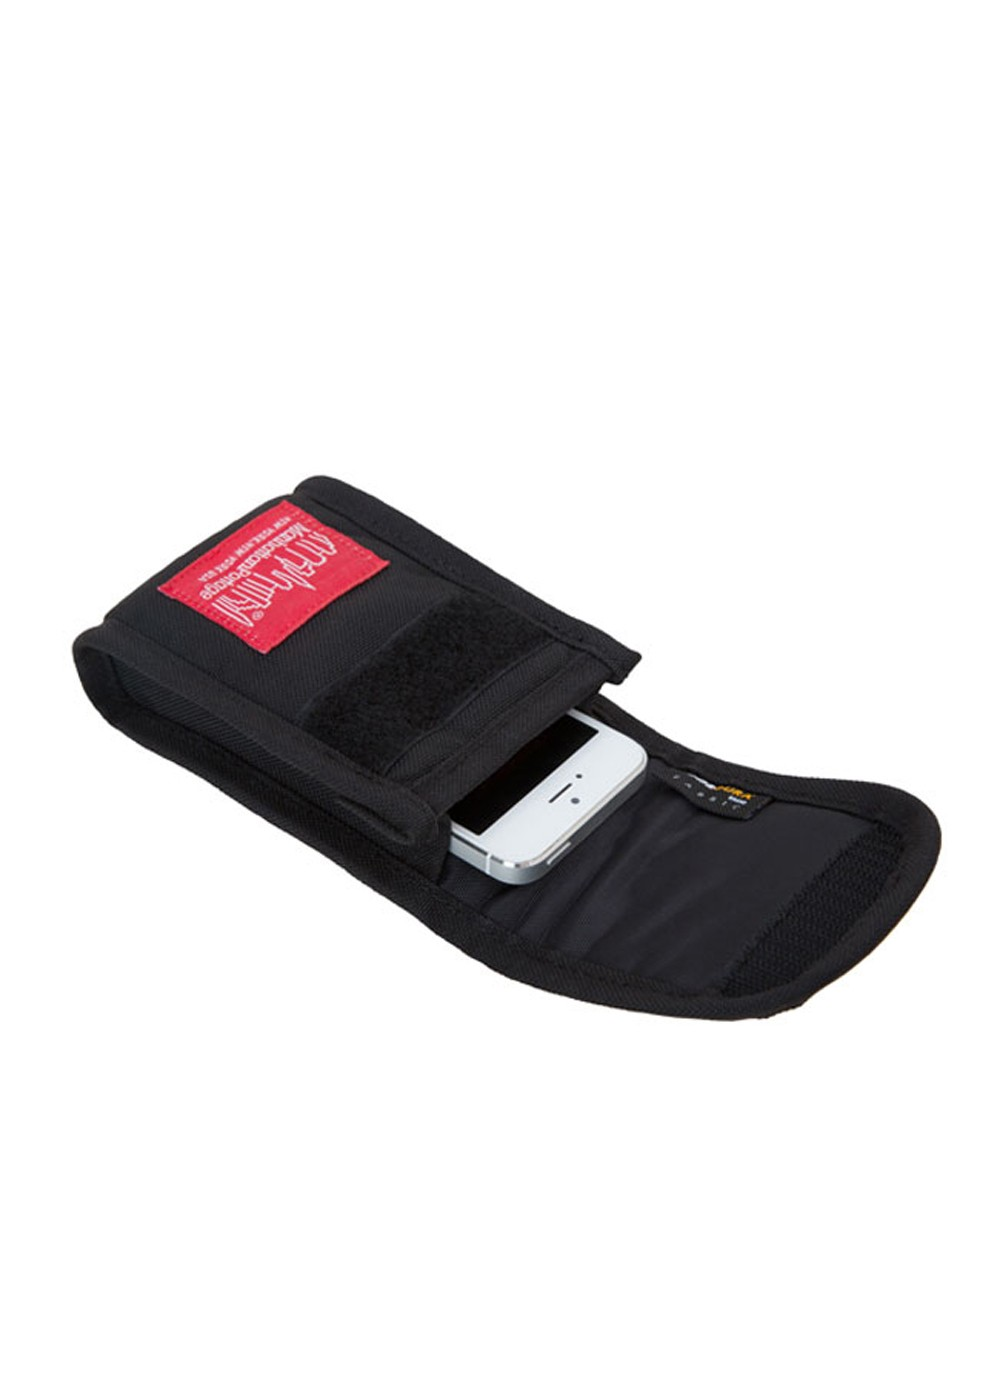 【最大0%OFF】Accessory Case|レッド|その他小物|Manhattan Portage